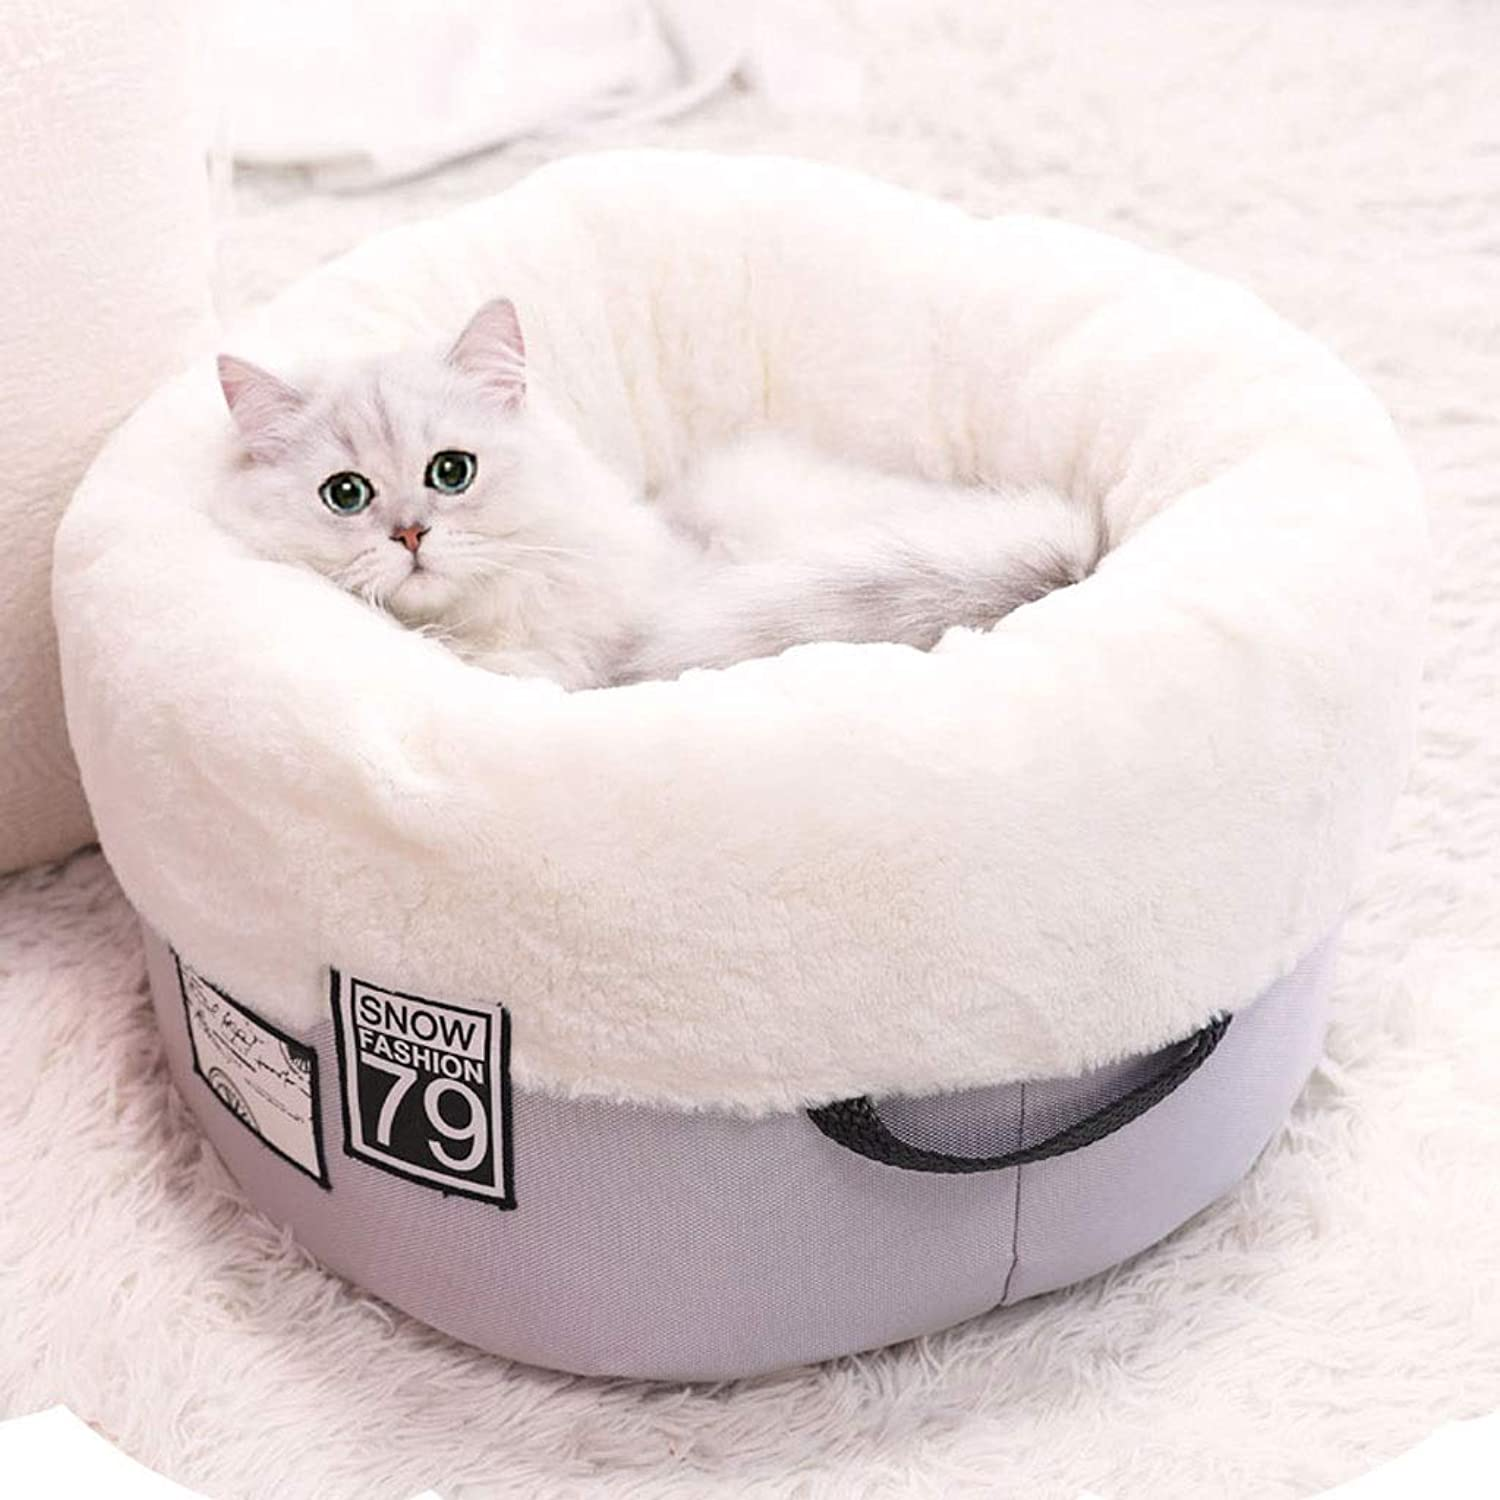 Pet bed Pet Sleeping Cabin Universal for Four Seasons Can Be Separately Removed and Washed Easy to Move NonSlip Design Pet Supplies (color   White, Size   B55  55  27CM)